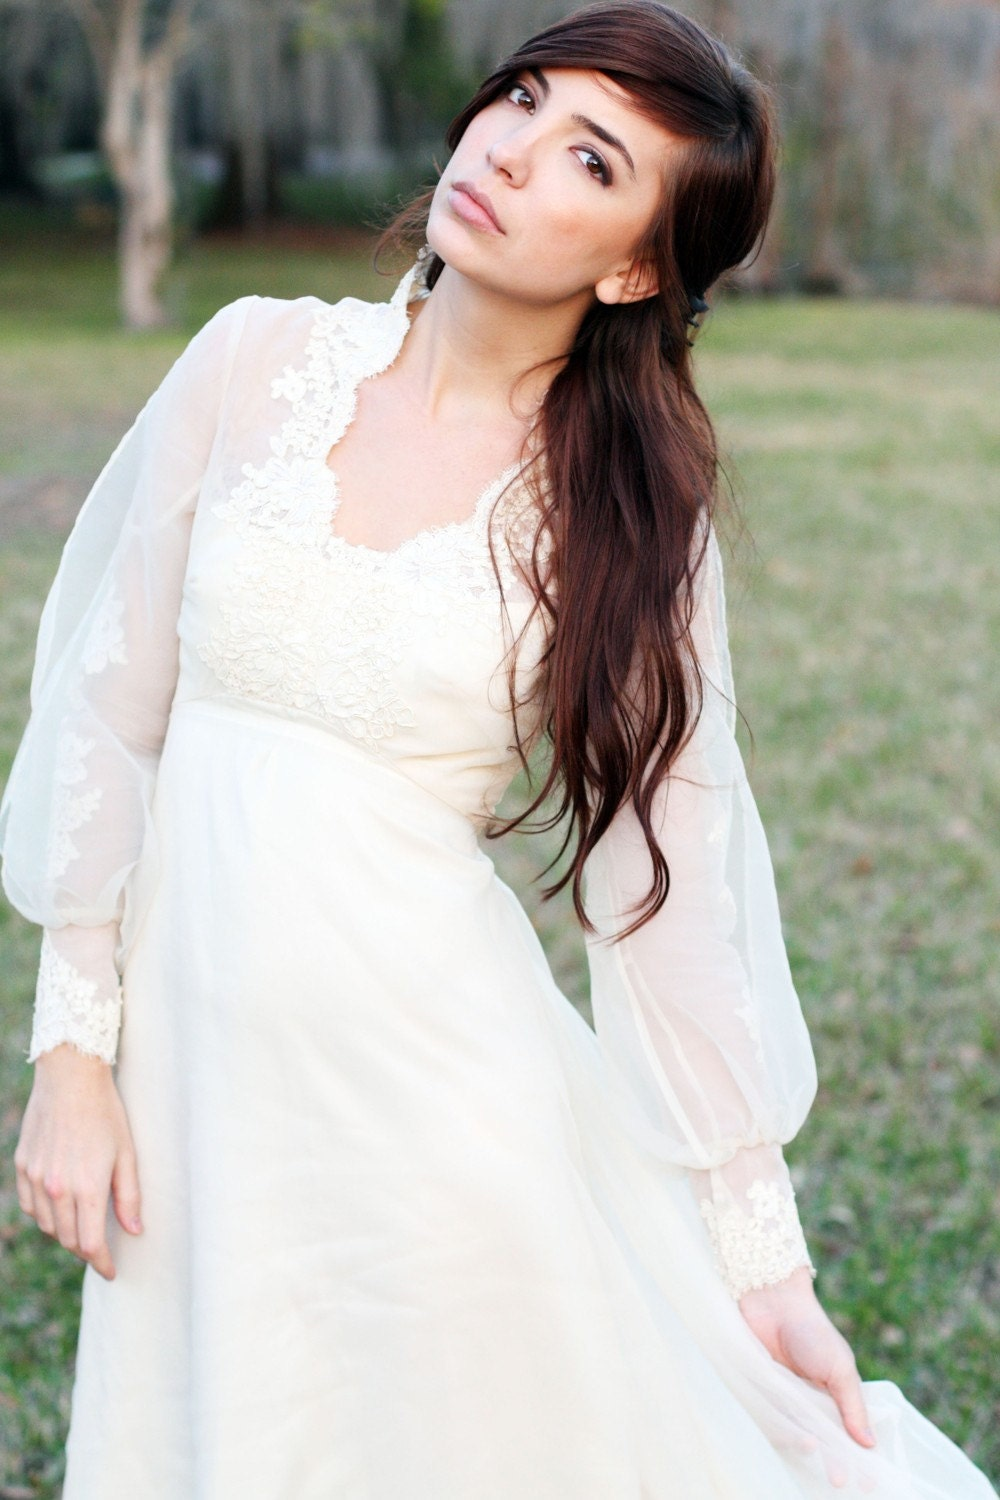 EMPRESS BOHEMIAN DRESS Lace Hippie Boho Wedding Bride